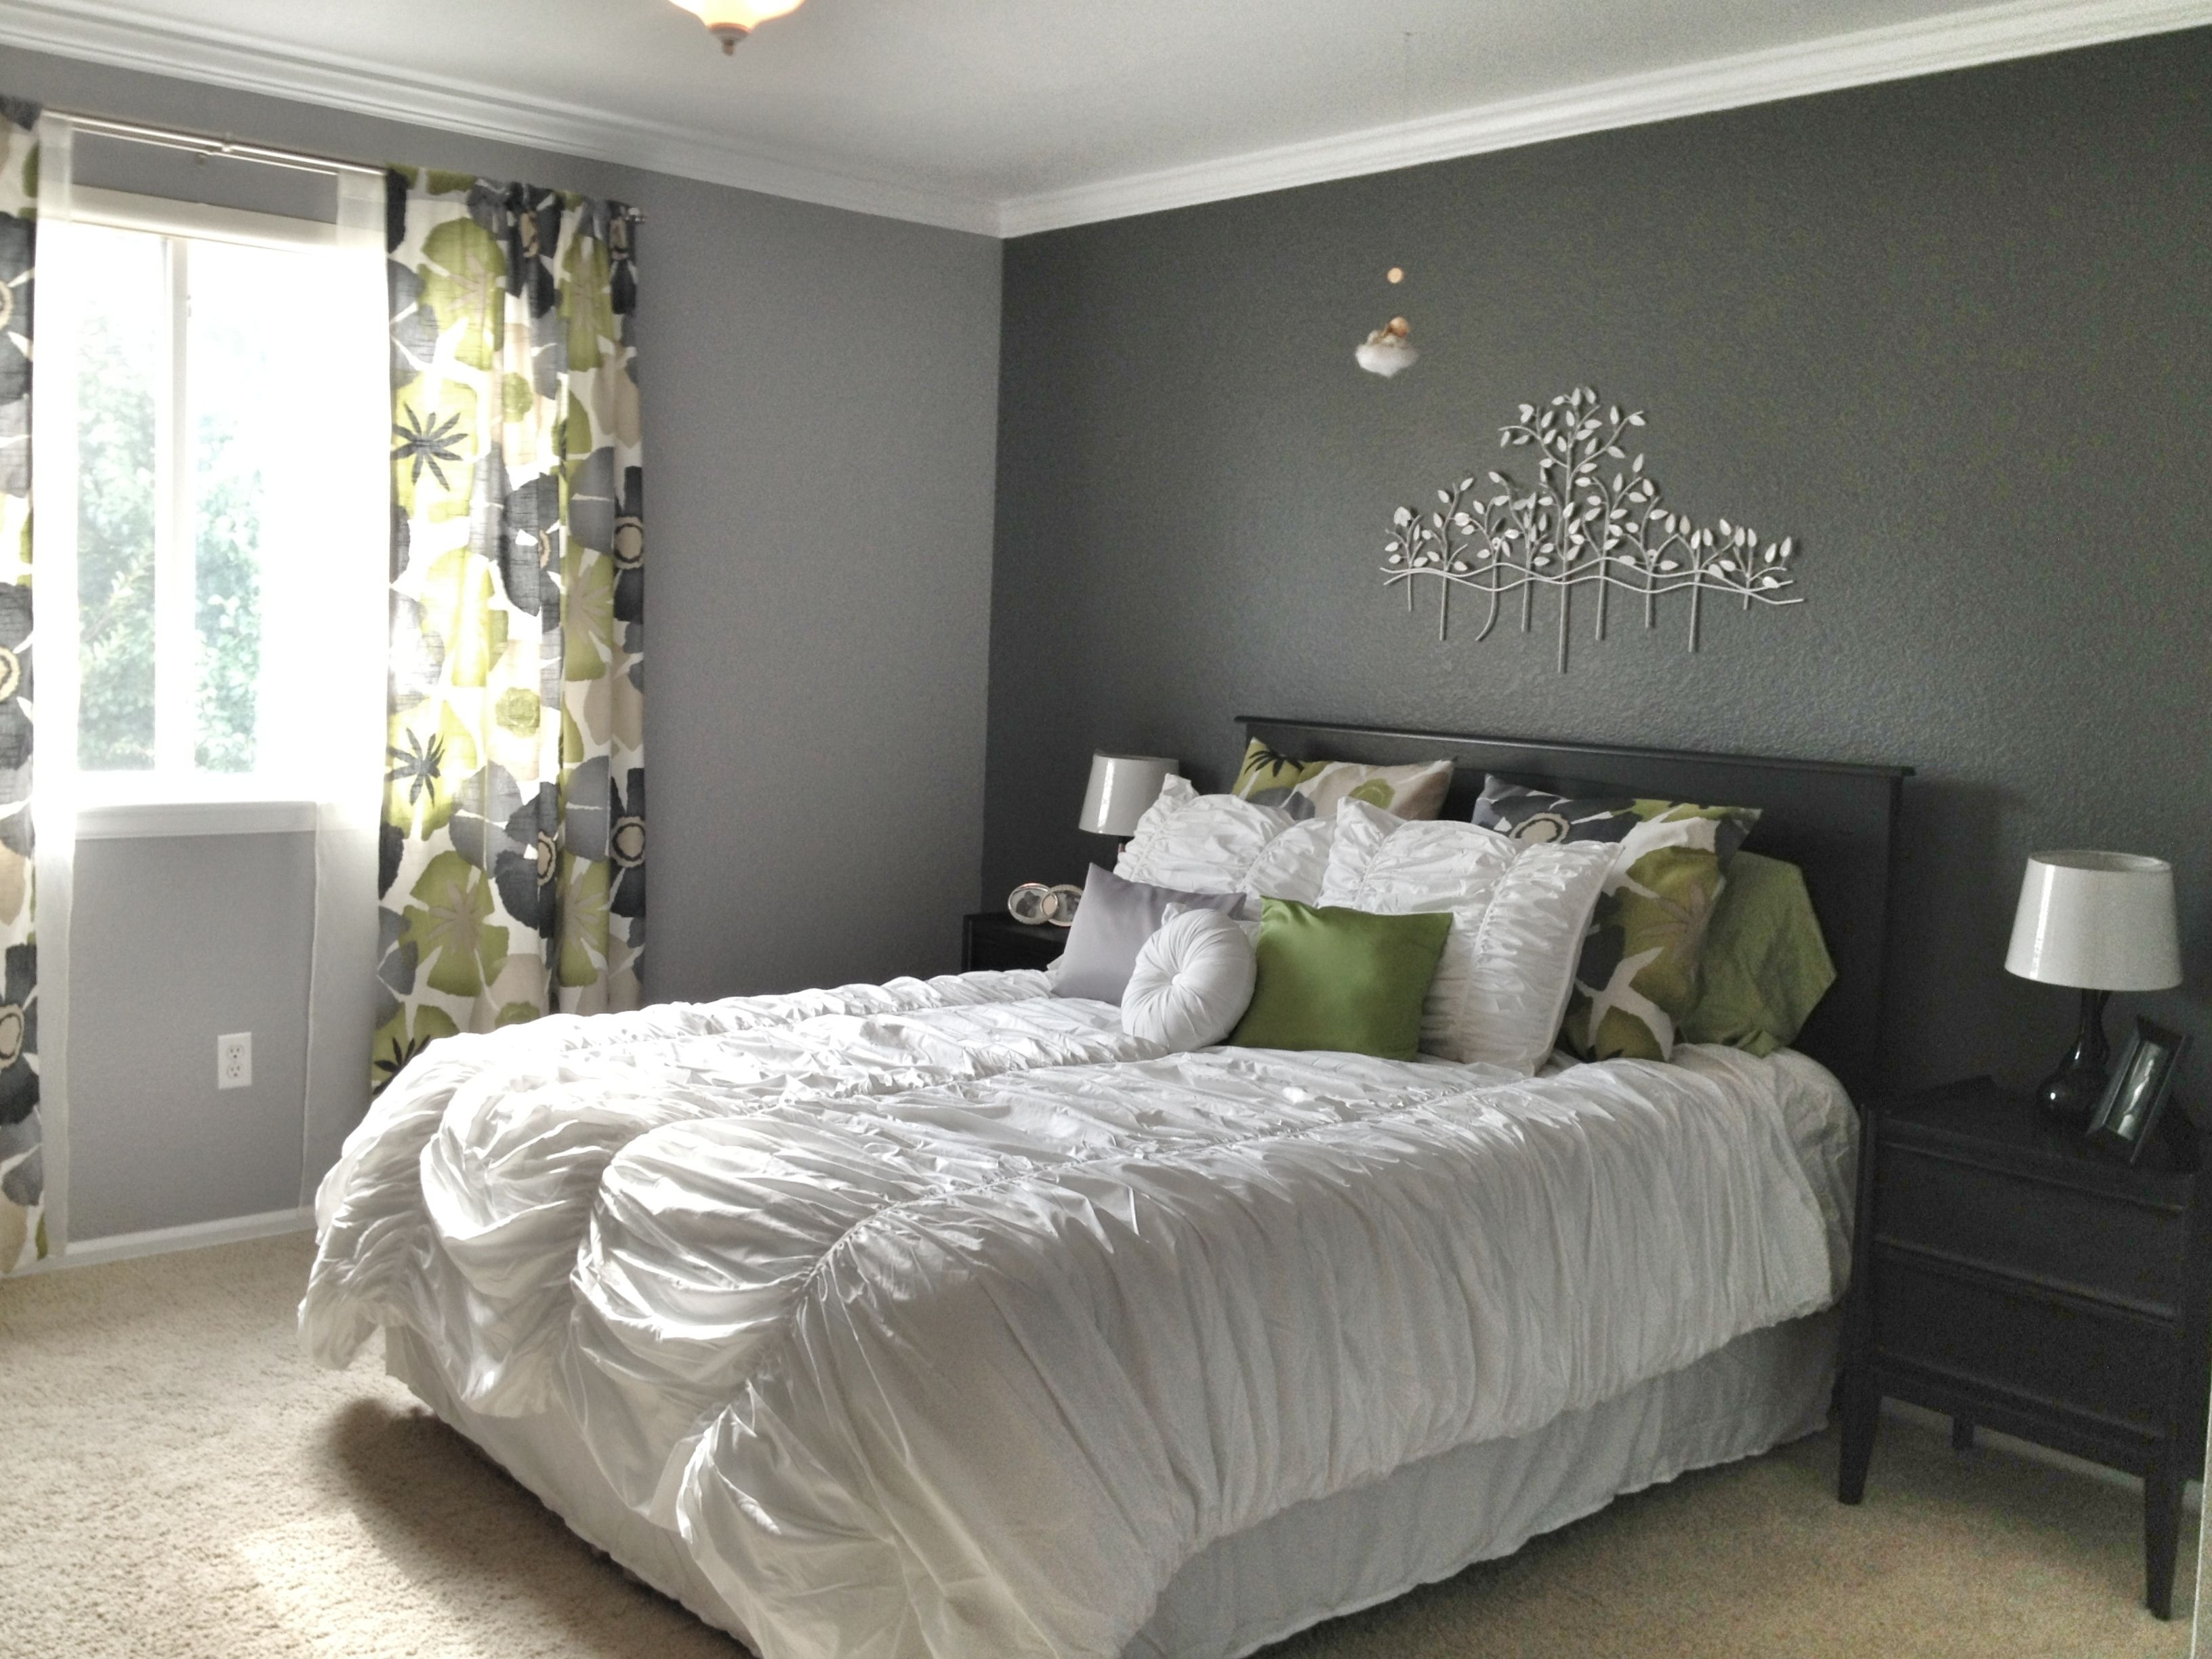 Grey Master Bedroom – Dark Accent Wall, Fun Patterned Curtains Within Most Popular Gray Wall Accents (View 6 of 15)